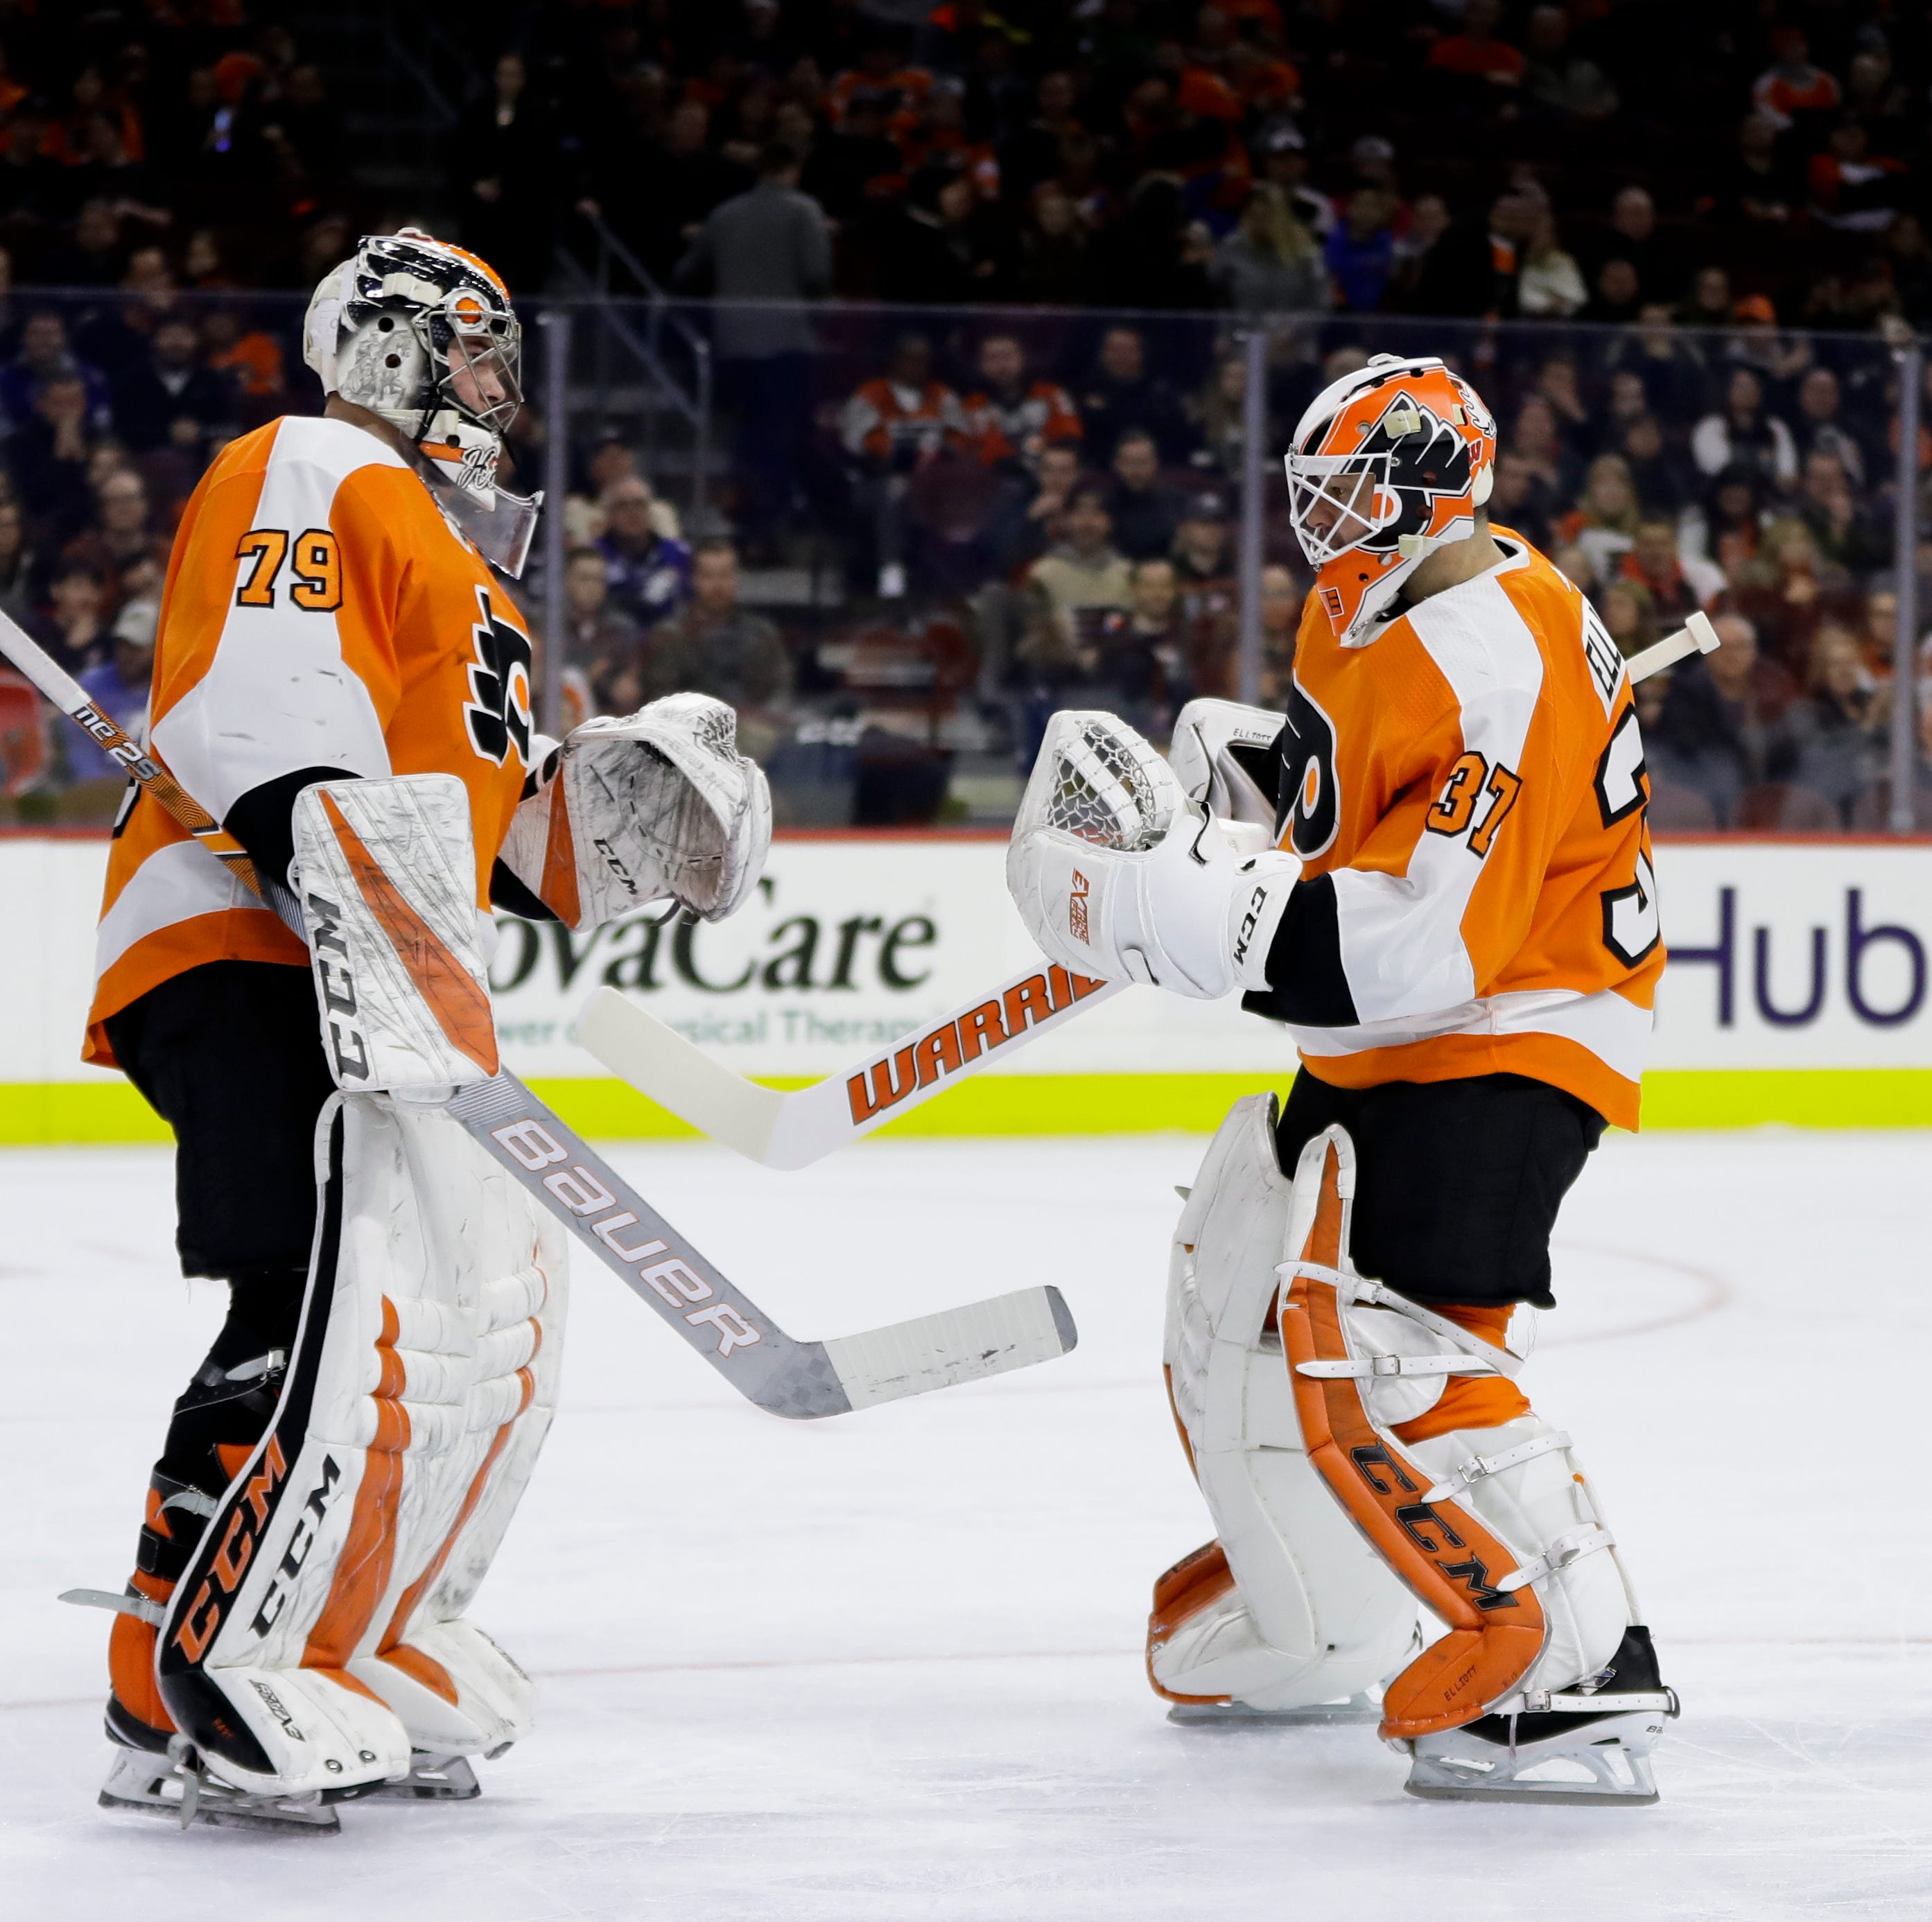 Flyers 5 takeaways: No comeback against Tampa this time